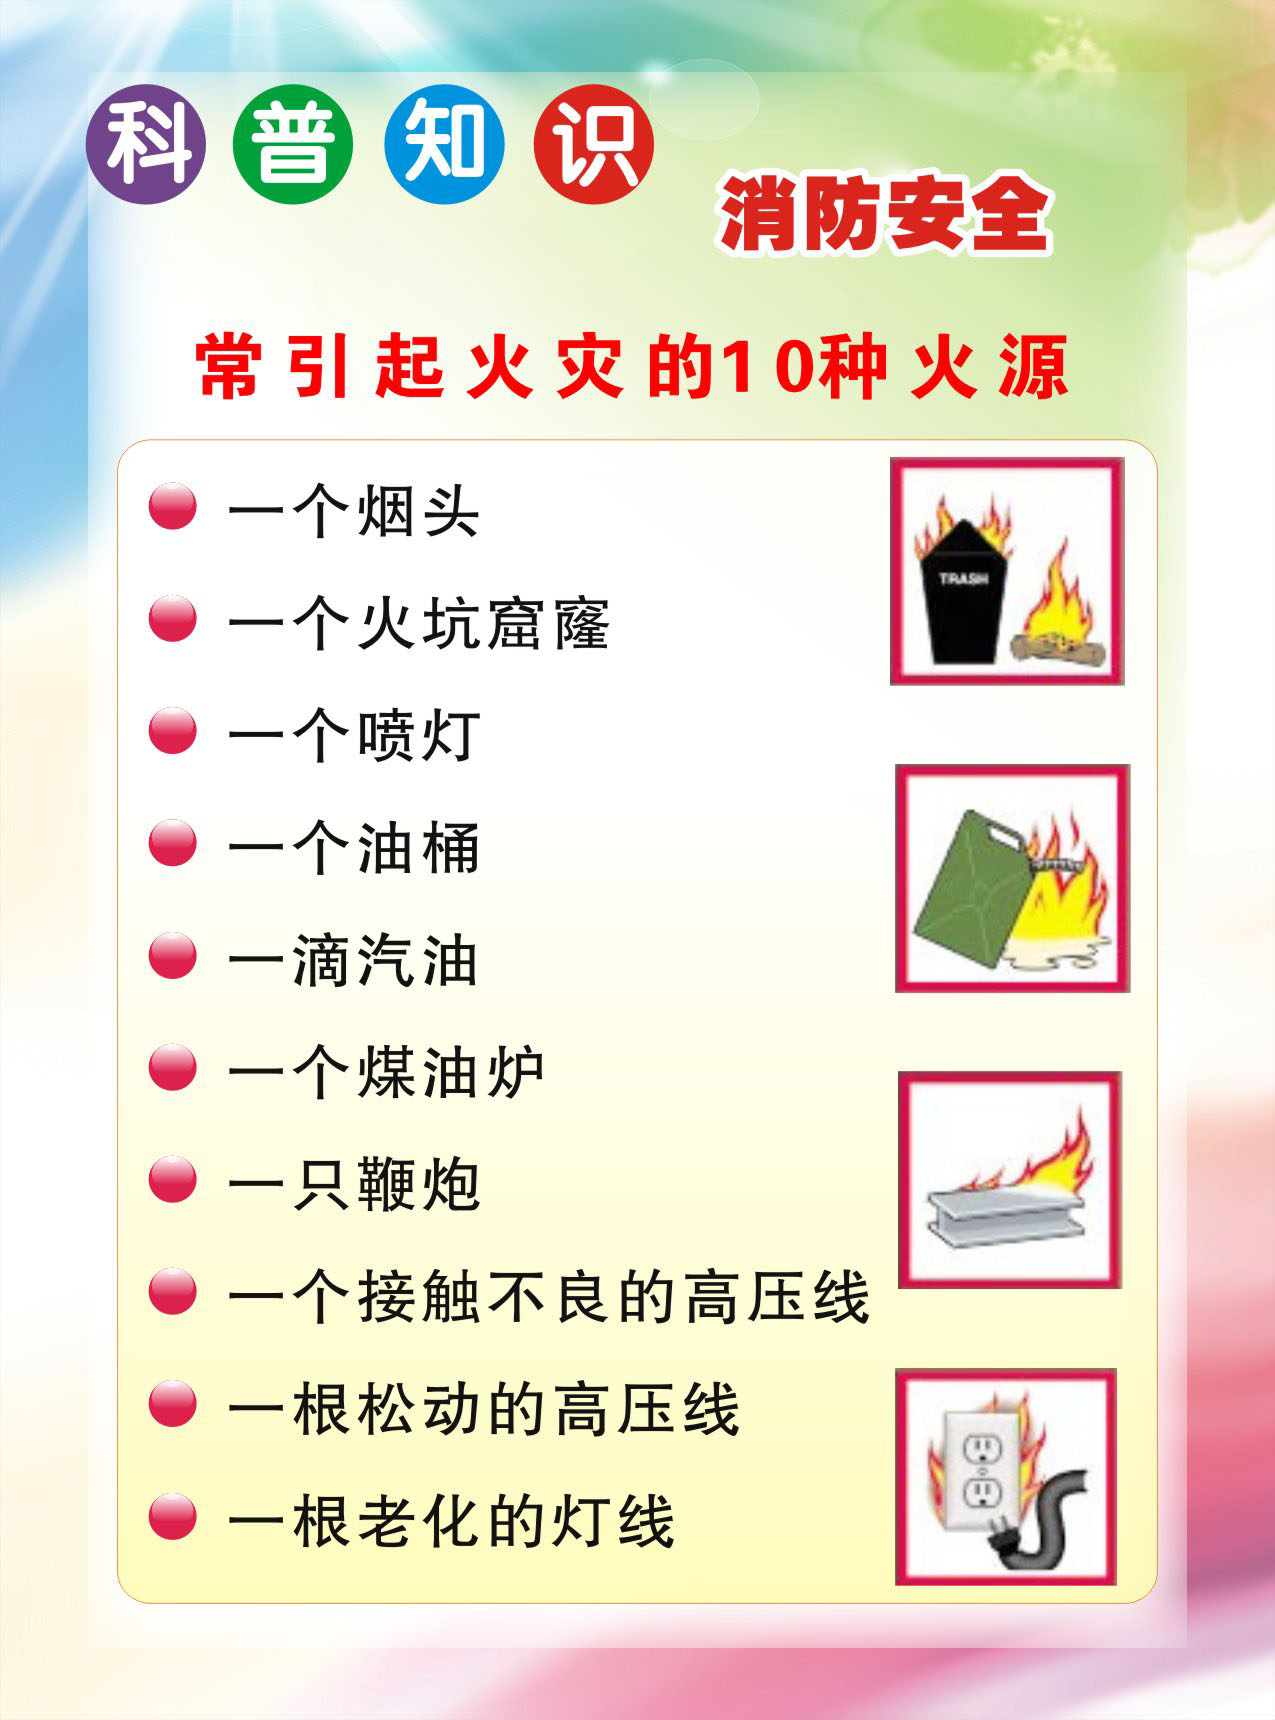 730 life classification knowledge poster posters photo inkjet printing 890 1 10 kinds of often cause fire disaster fire